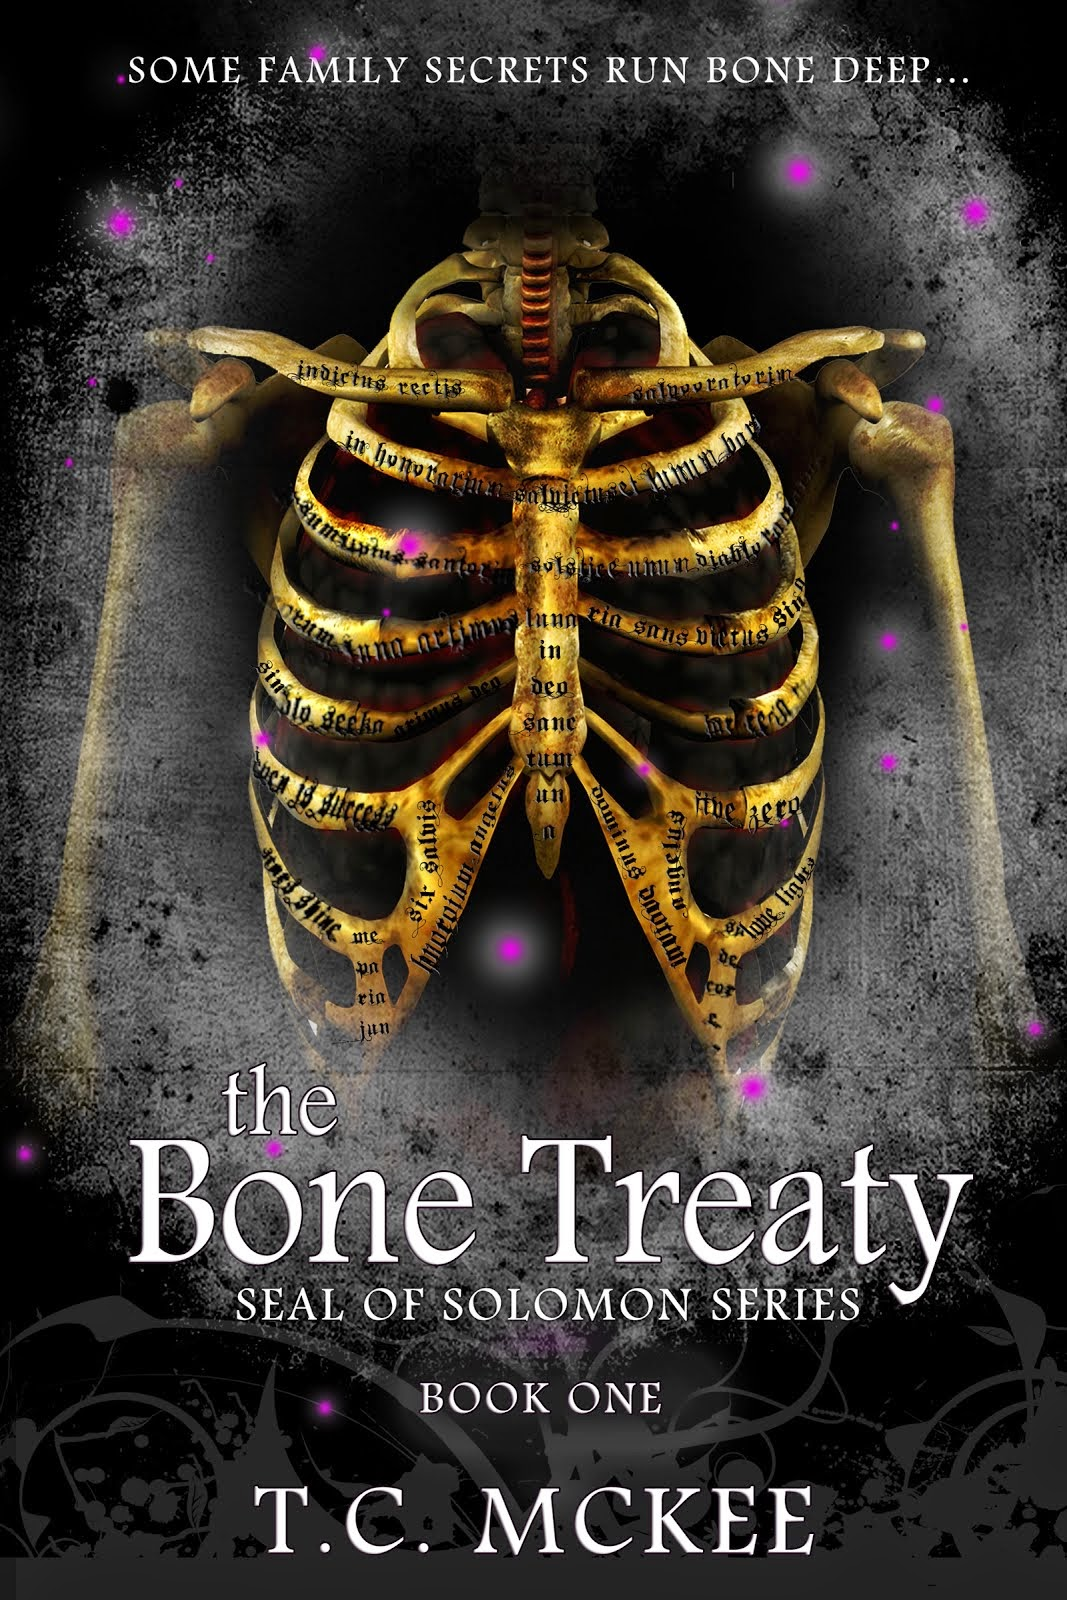 The Bone Treaty